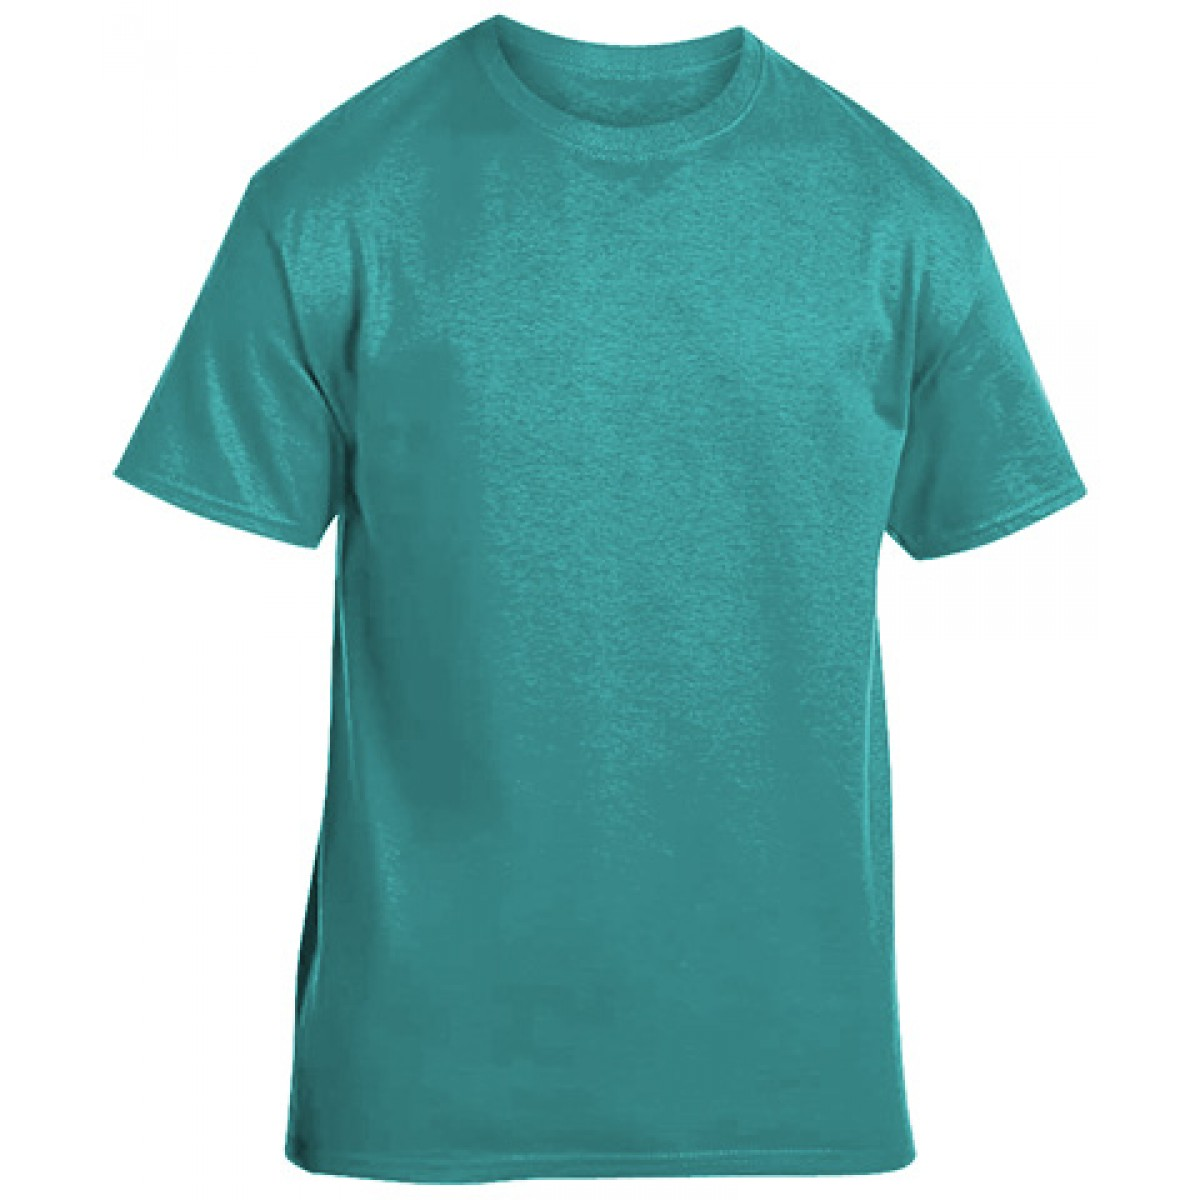 Soft 100% Cotton T-Shirt-Jade-L